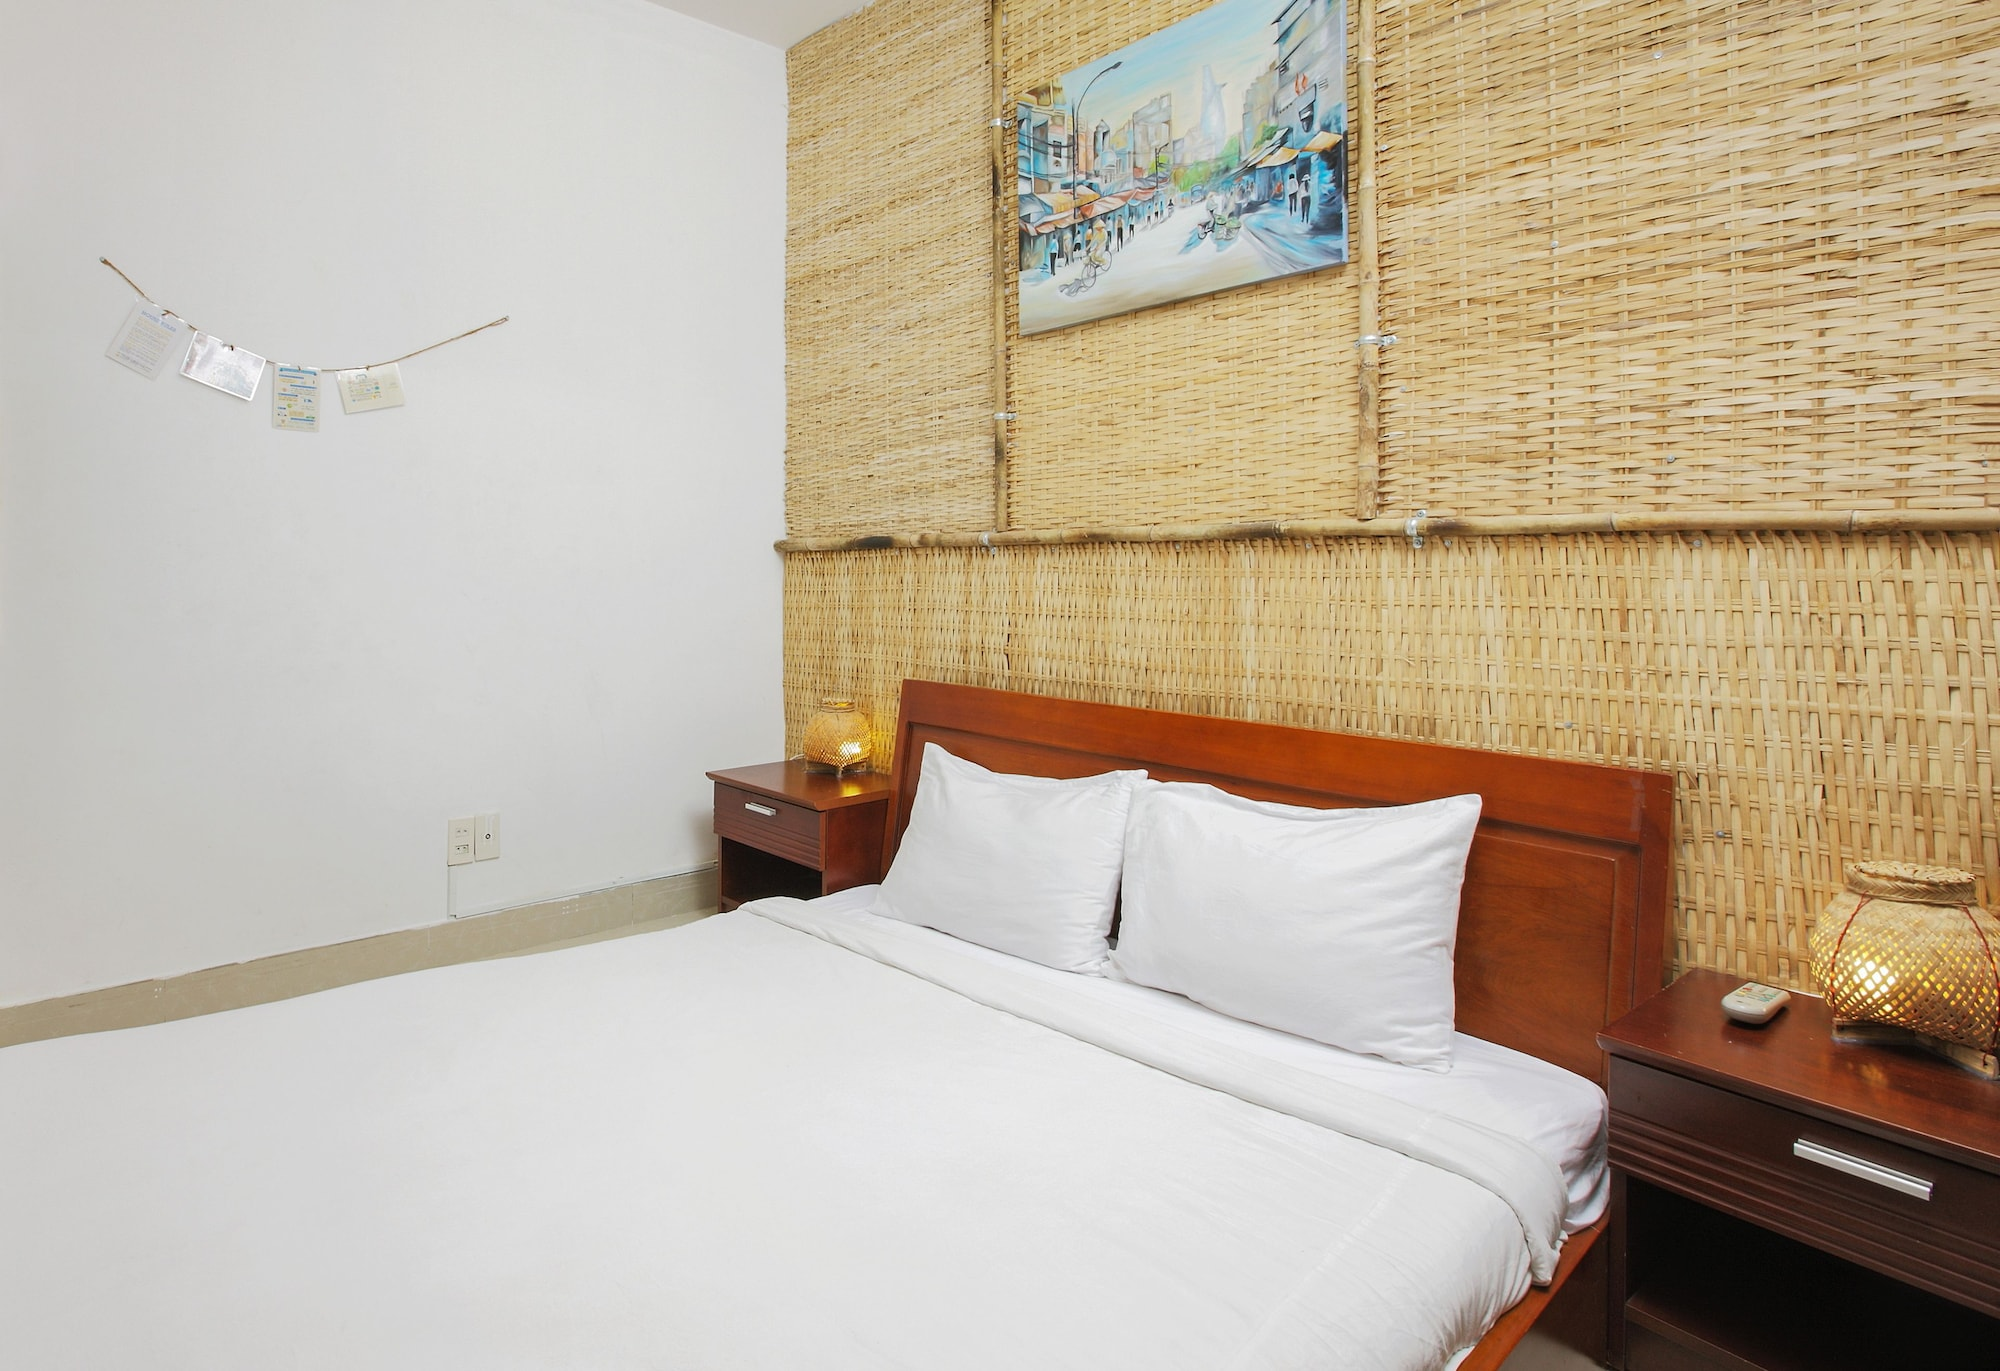 Saigon Backpackers Hostel - Bui Vien, Quận 1